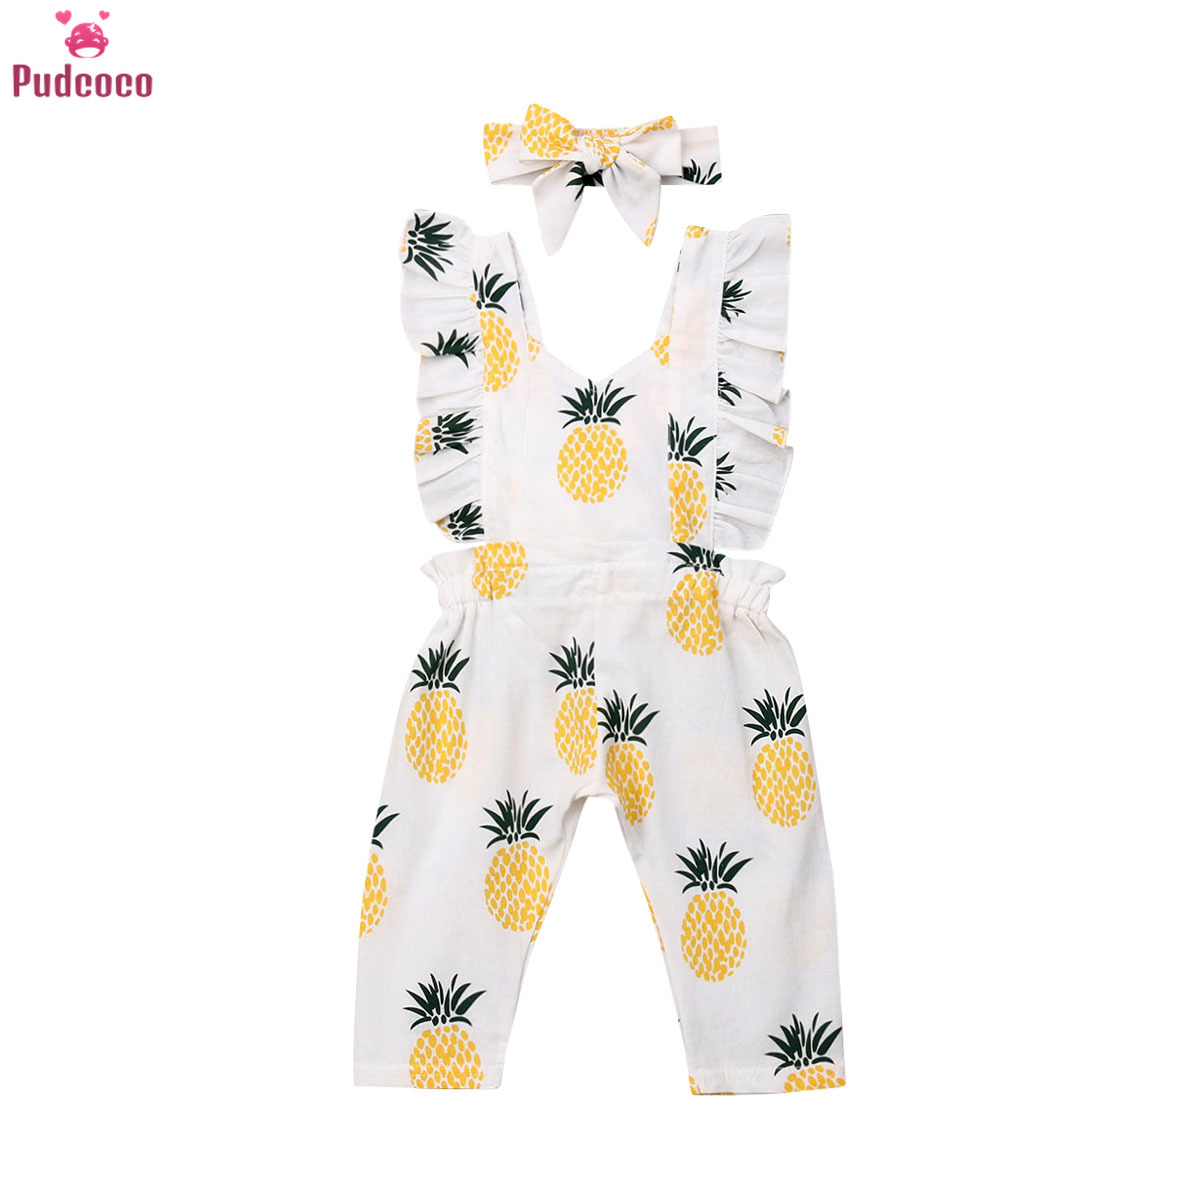 Toddler Newborn Baby Girl Jumpsuit Infant Clothes Sleeveless Ruffle Pineapple Printed Romper Headband Outfits Clothing Set